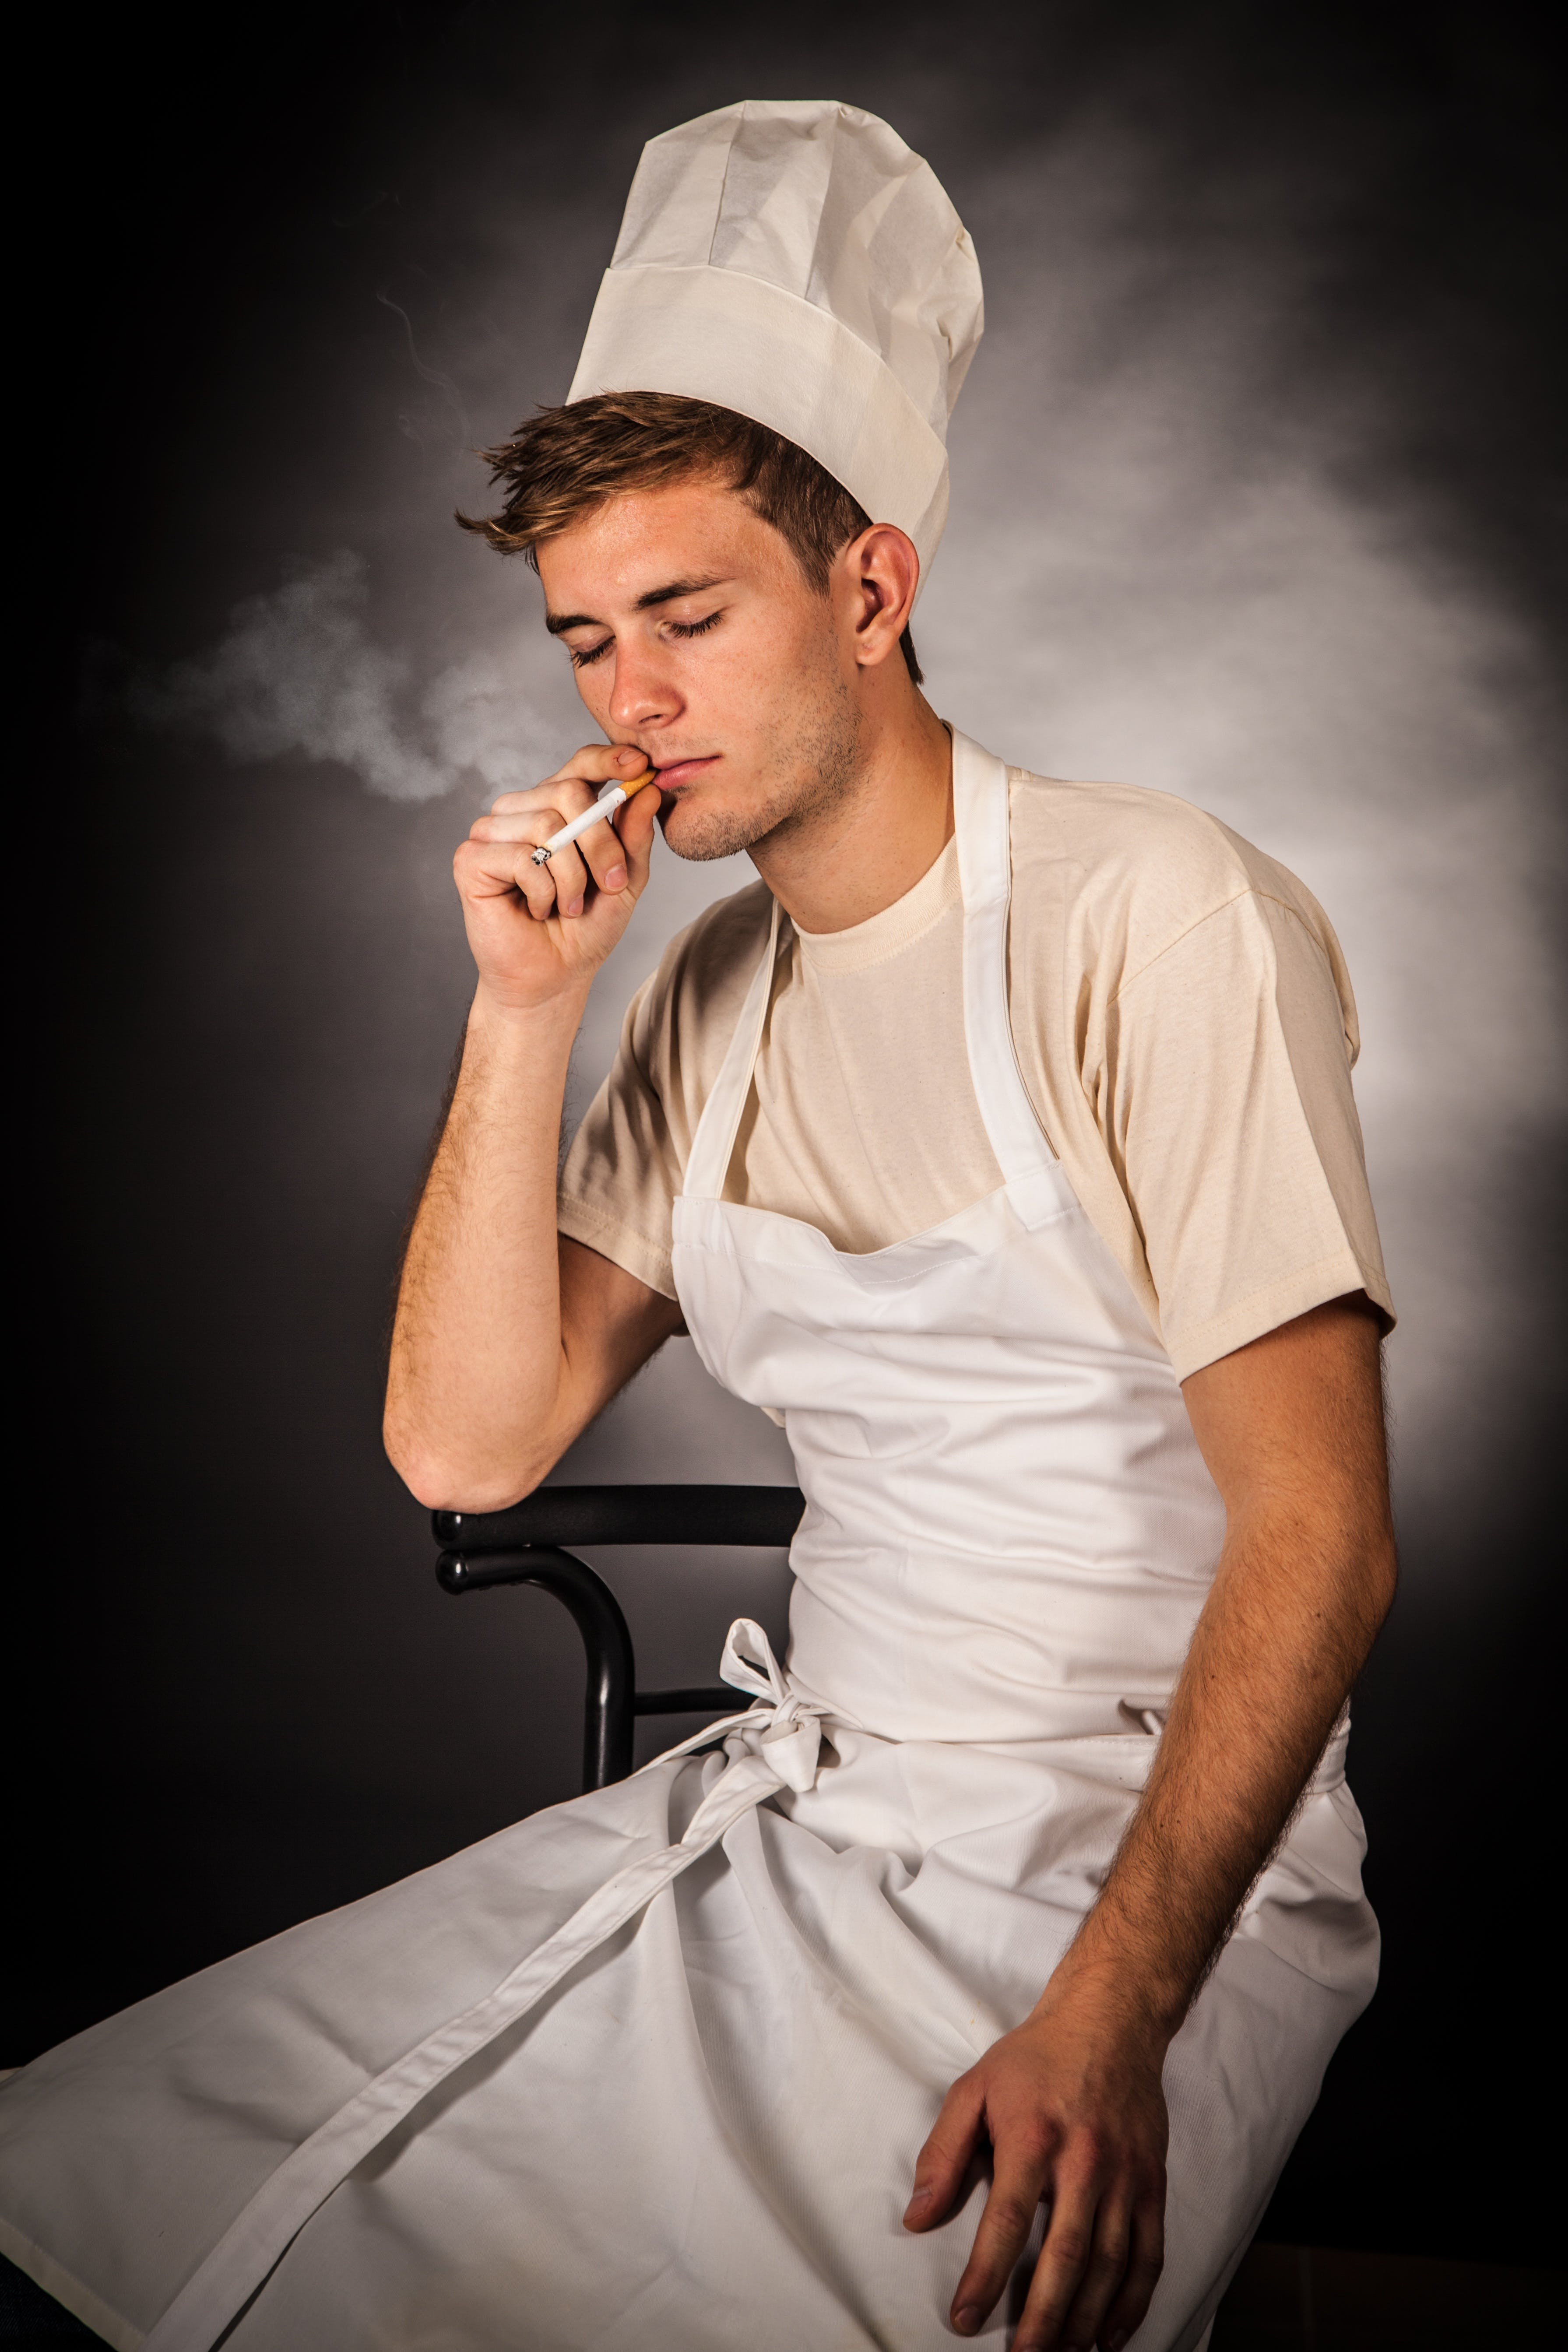 Man in White Apron Holding Cigarette Smoking